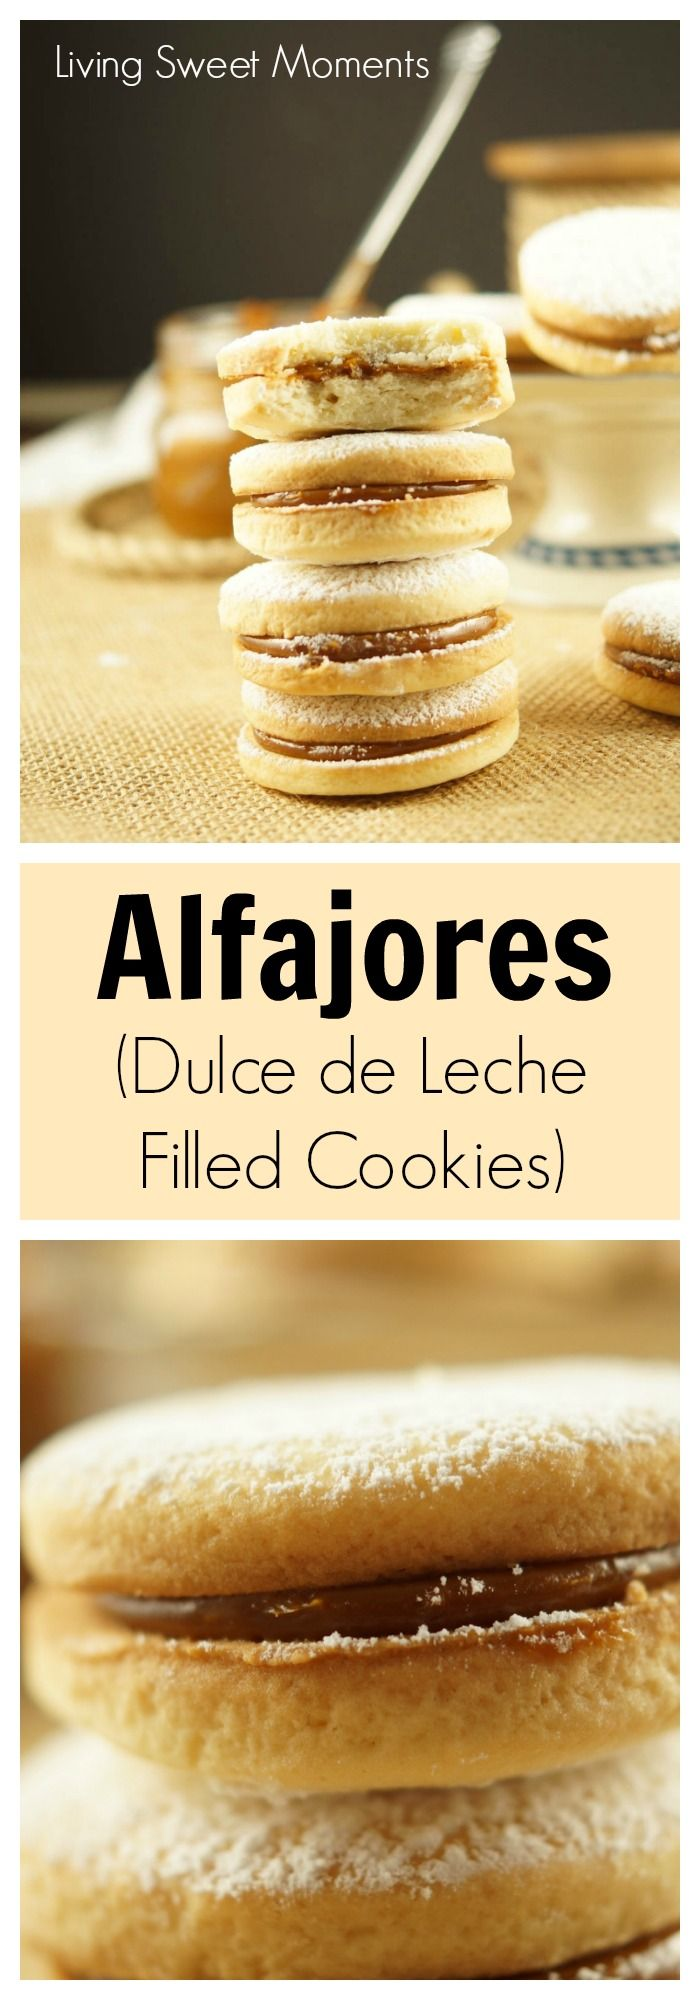 Alfajores Recipe - they are delicate shortbread cookies filled with dulce de leche. These cookies use cornstarch as a main ingredient. Great with coffee! More on liivngsweetmoments.com